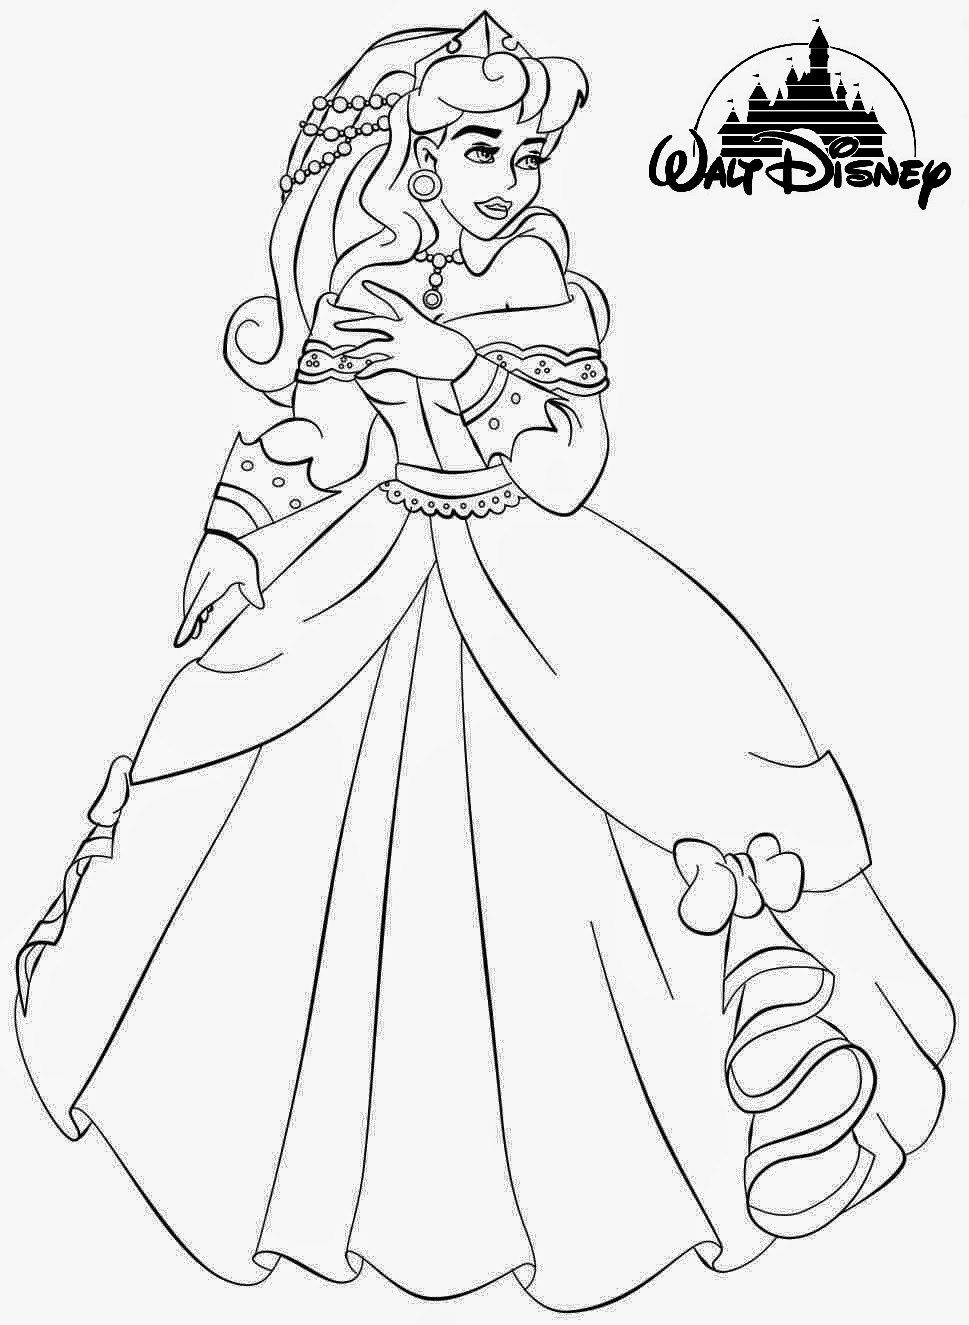 princess coloring pages free printable - Cool Printables & Coloring Pages Free Activities Barbie